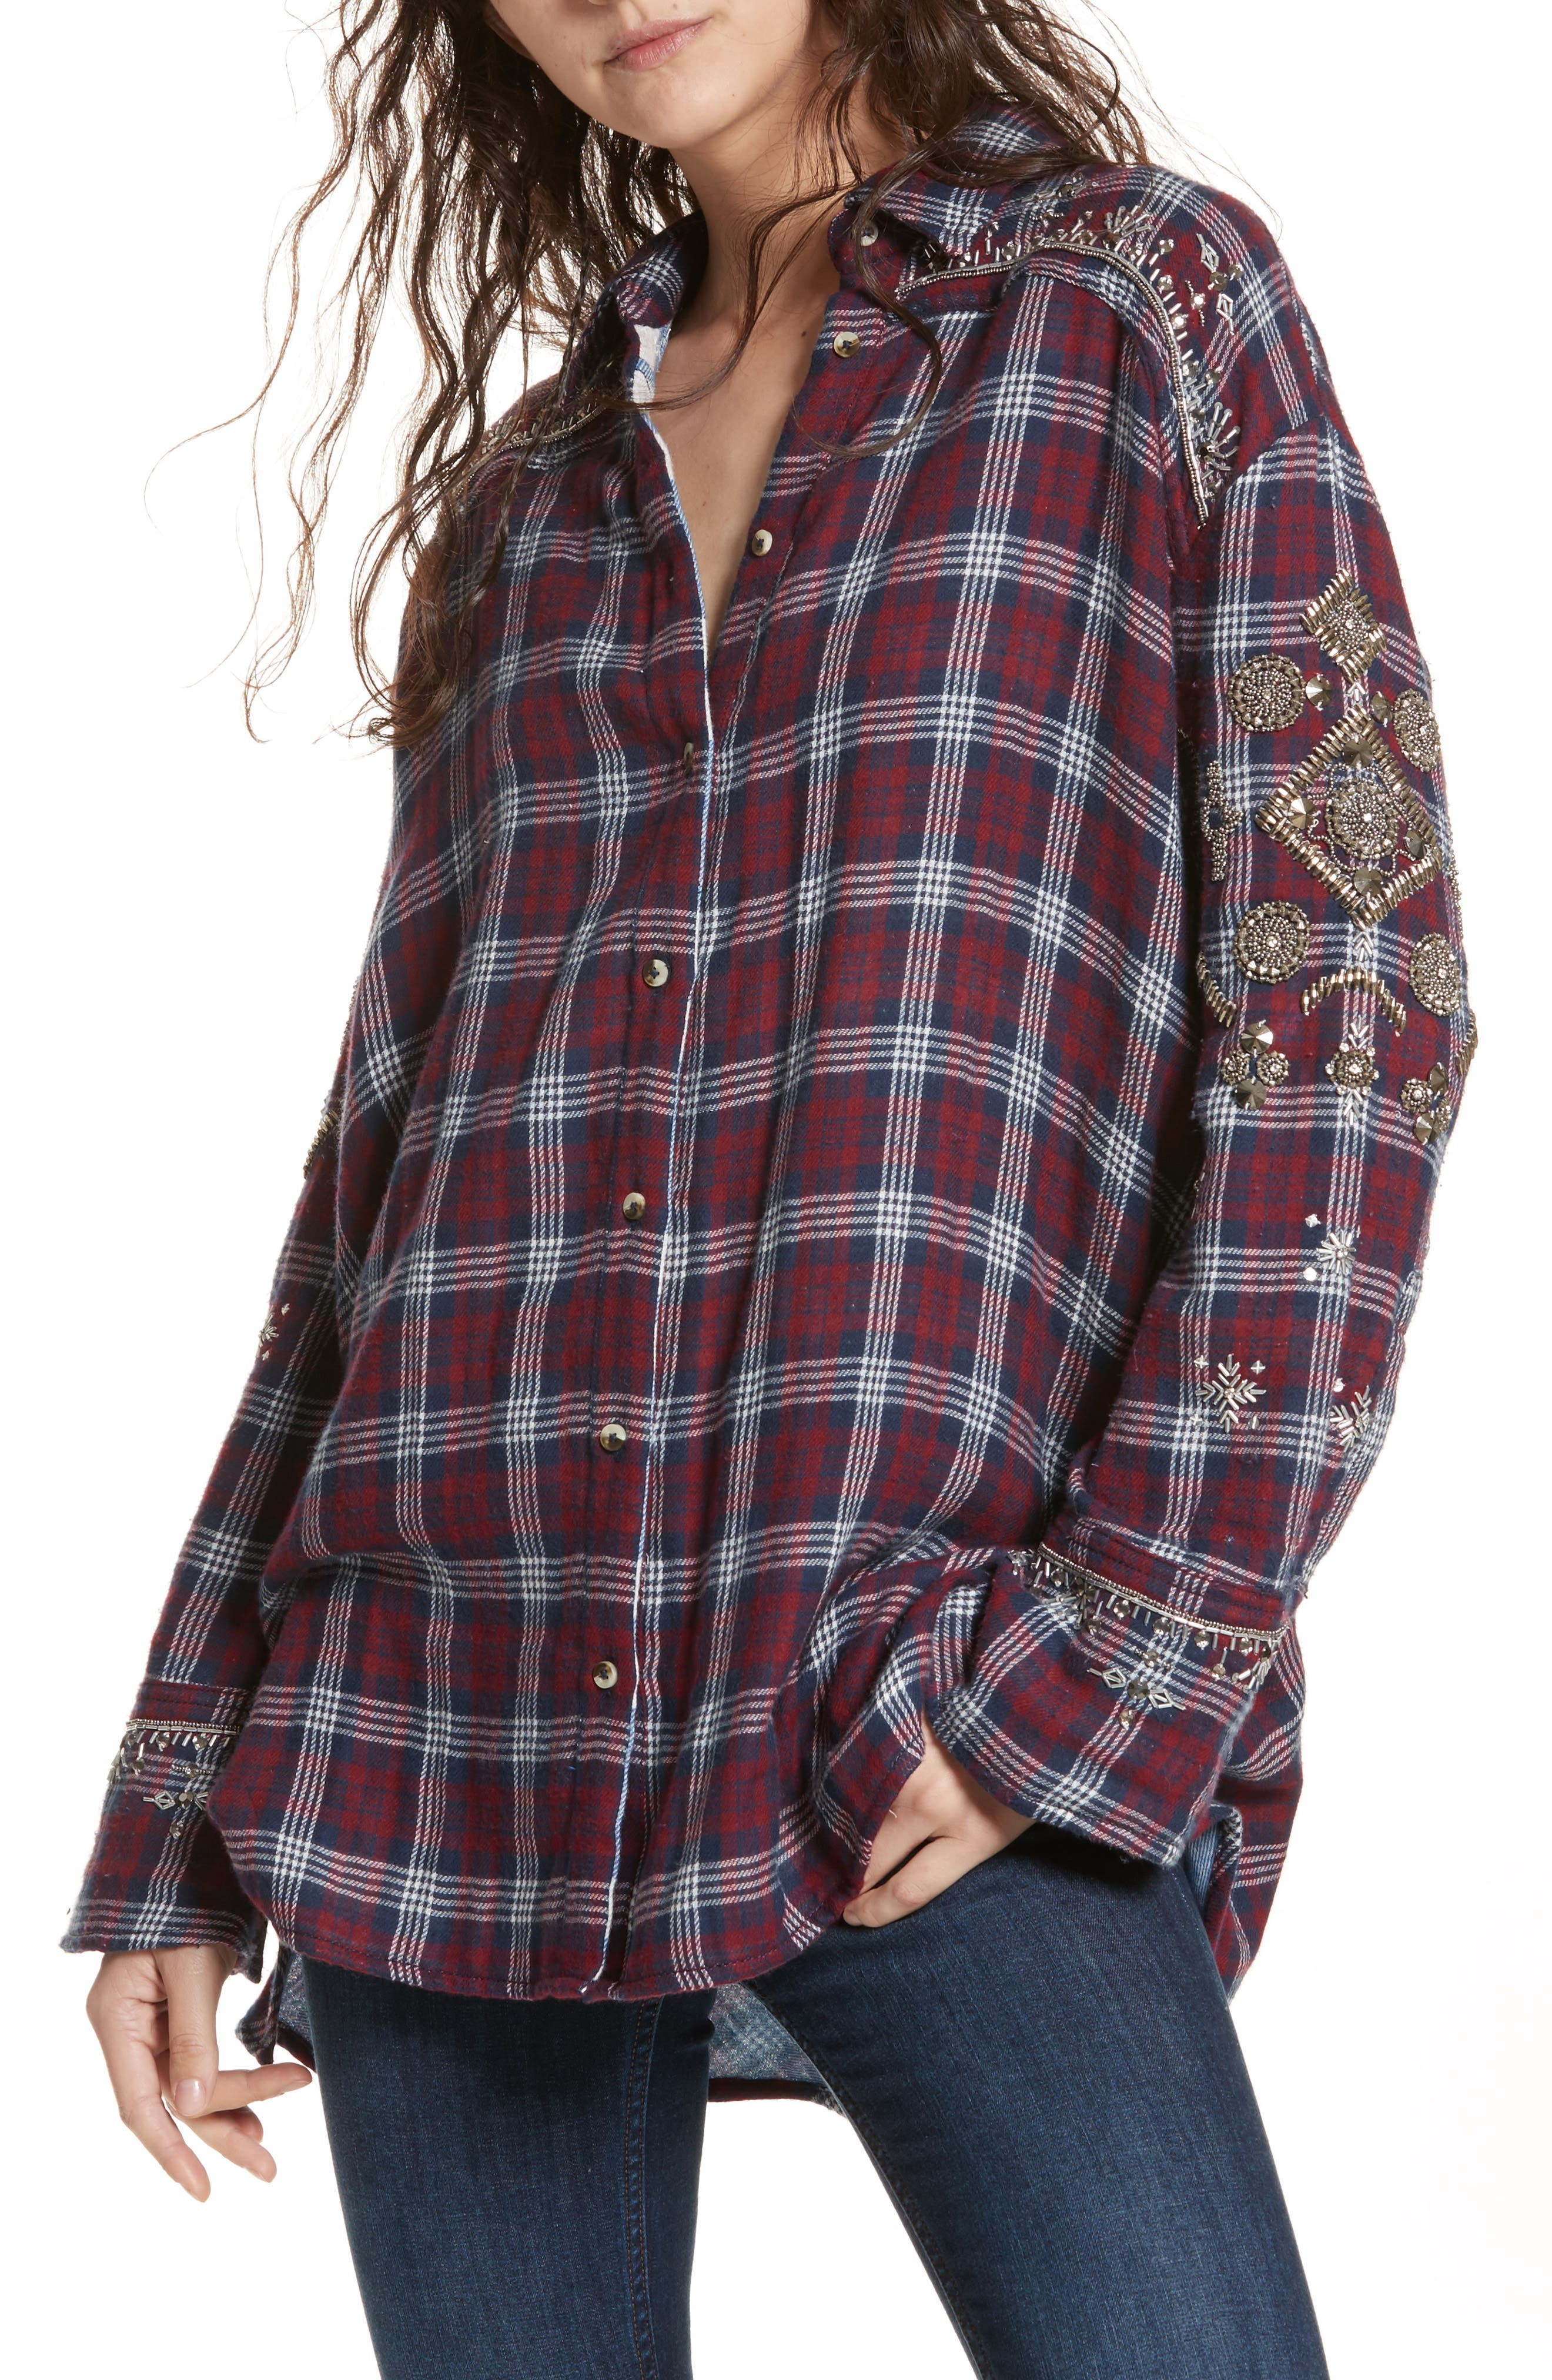 Downtown Romance Embellished Shirt,                         Main,                         color, 600